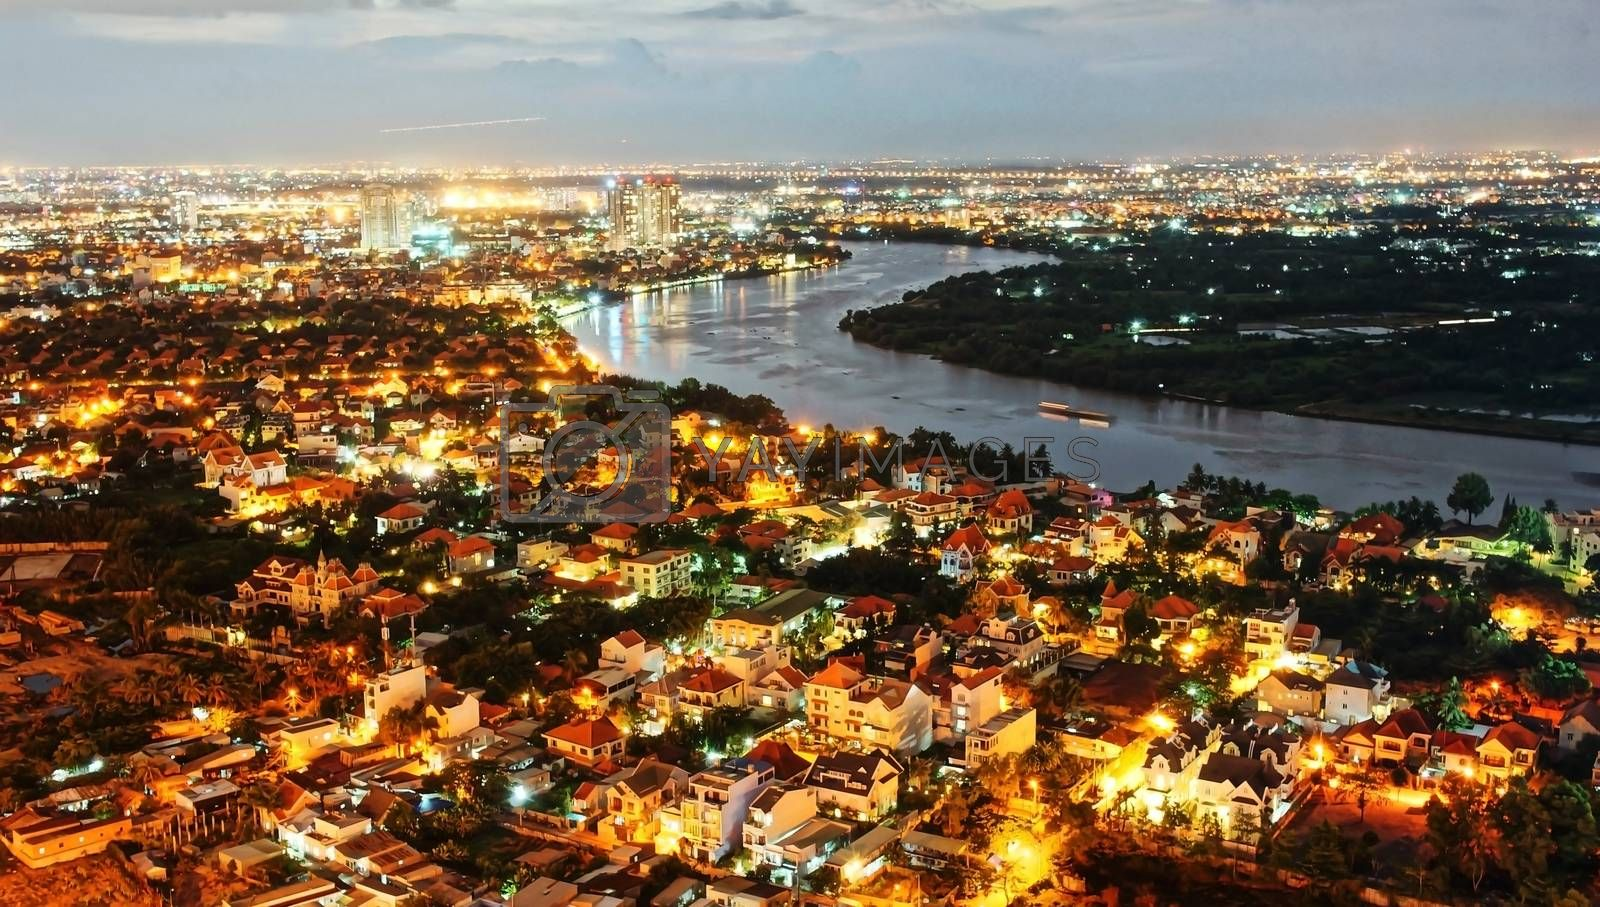 Impression night landscape of Ho Chi Minh city from high view by xuanhuongho